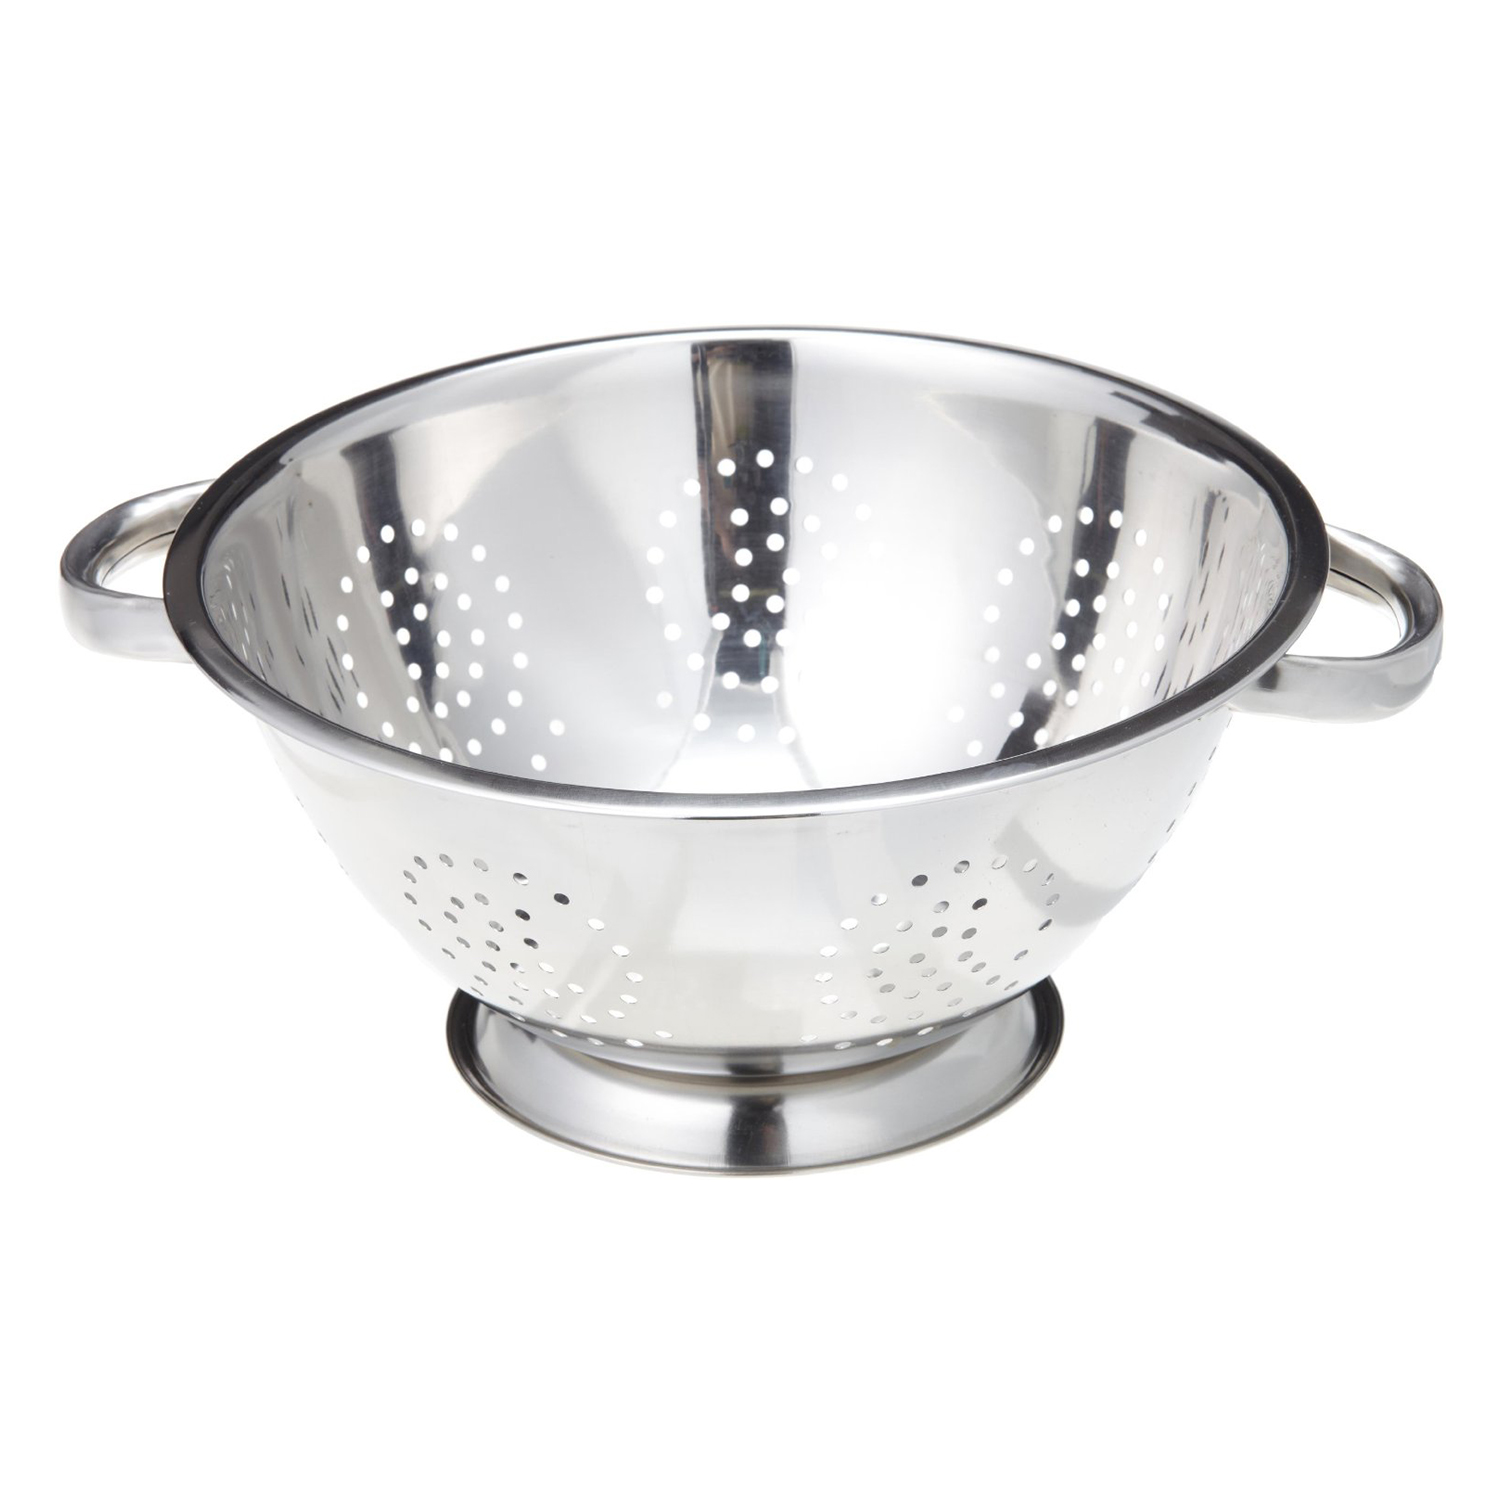 Our favorite colander